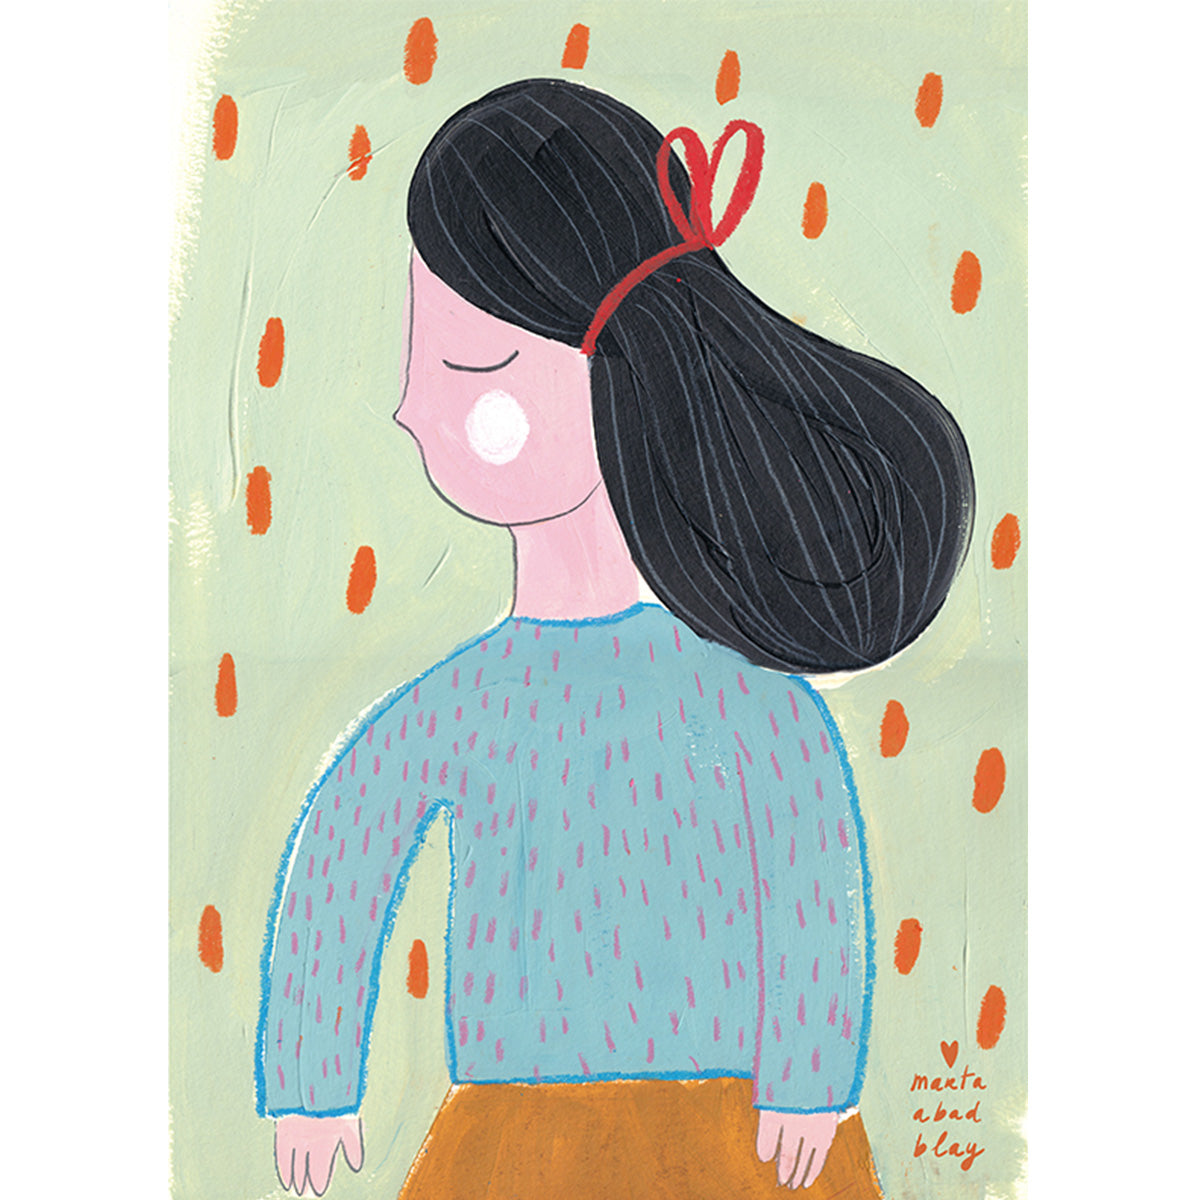 What Penny Wants Print Marta Abad Blay - What Penny Wants - Illustrator - Artwork - Childrens Artwork - Nursery Decor - Girl Print - Marta Abad Blay - Natural Home - Sustainable Design .jpg